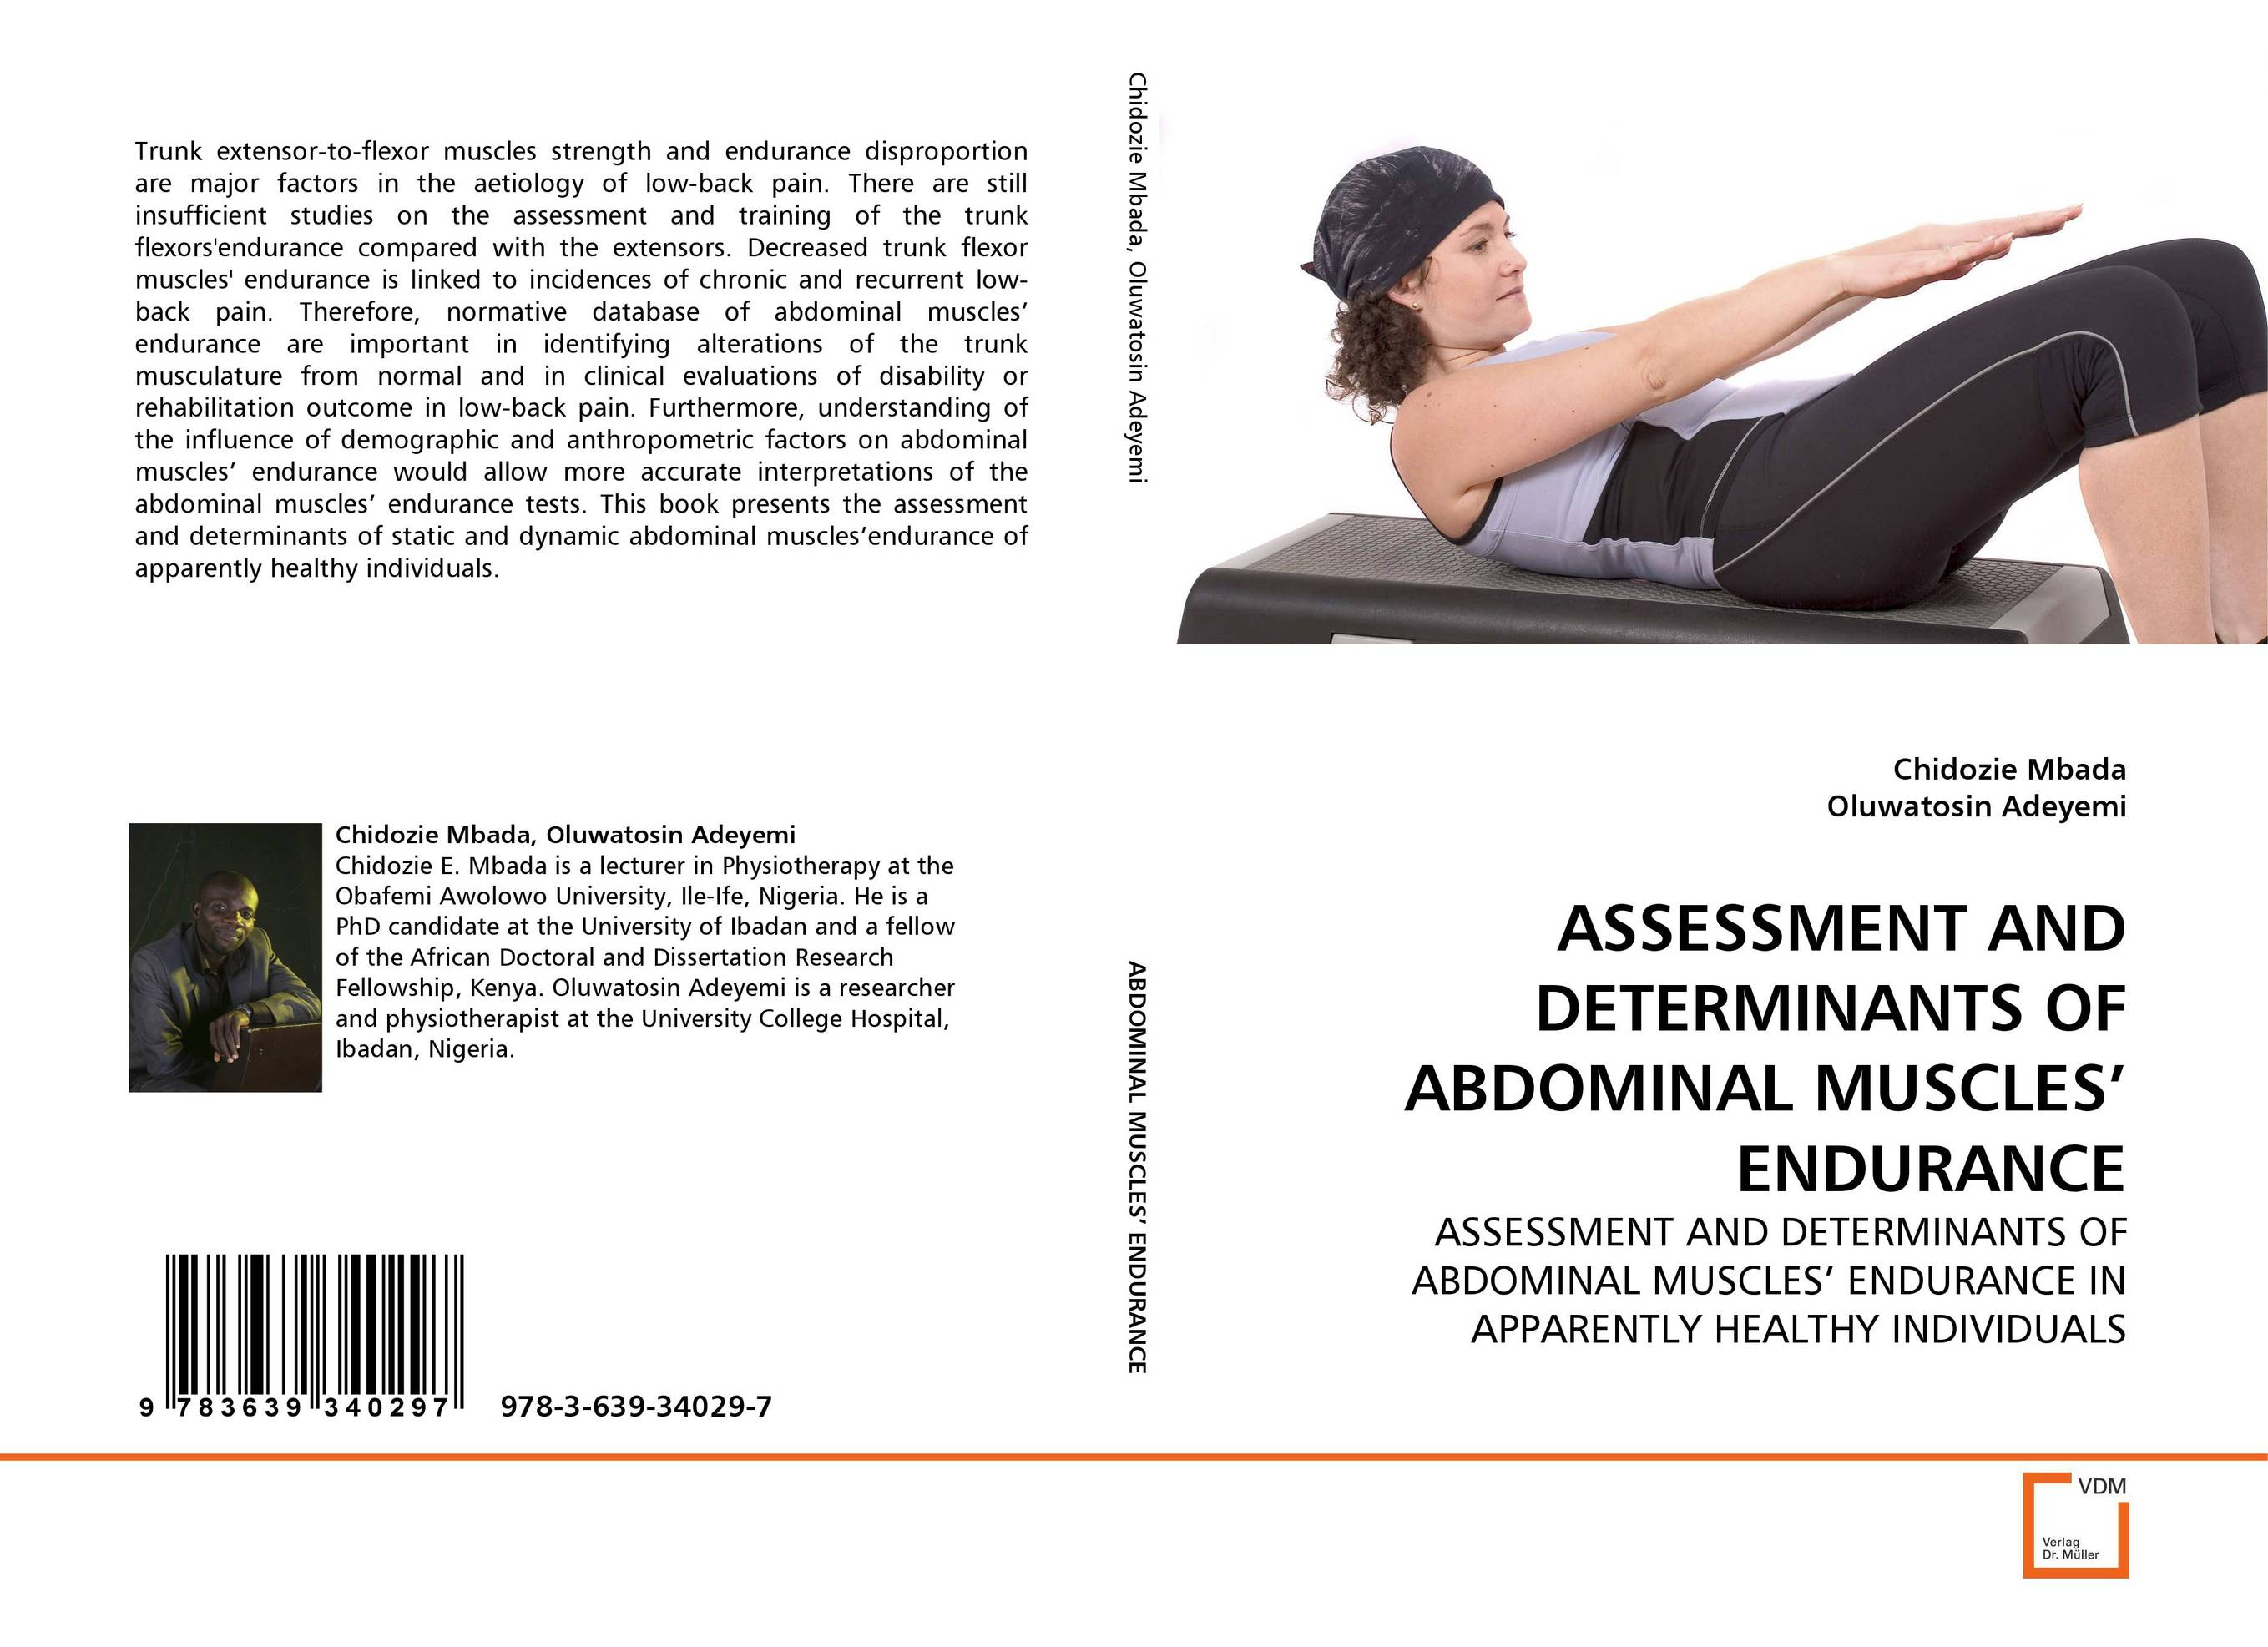 ASSESSMENT AND DETERMINANTS OF ABDOMINAL MUSCLES'' ENDURANCE cd pain of salvation in the passing light of day